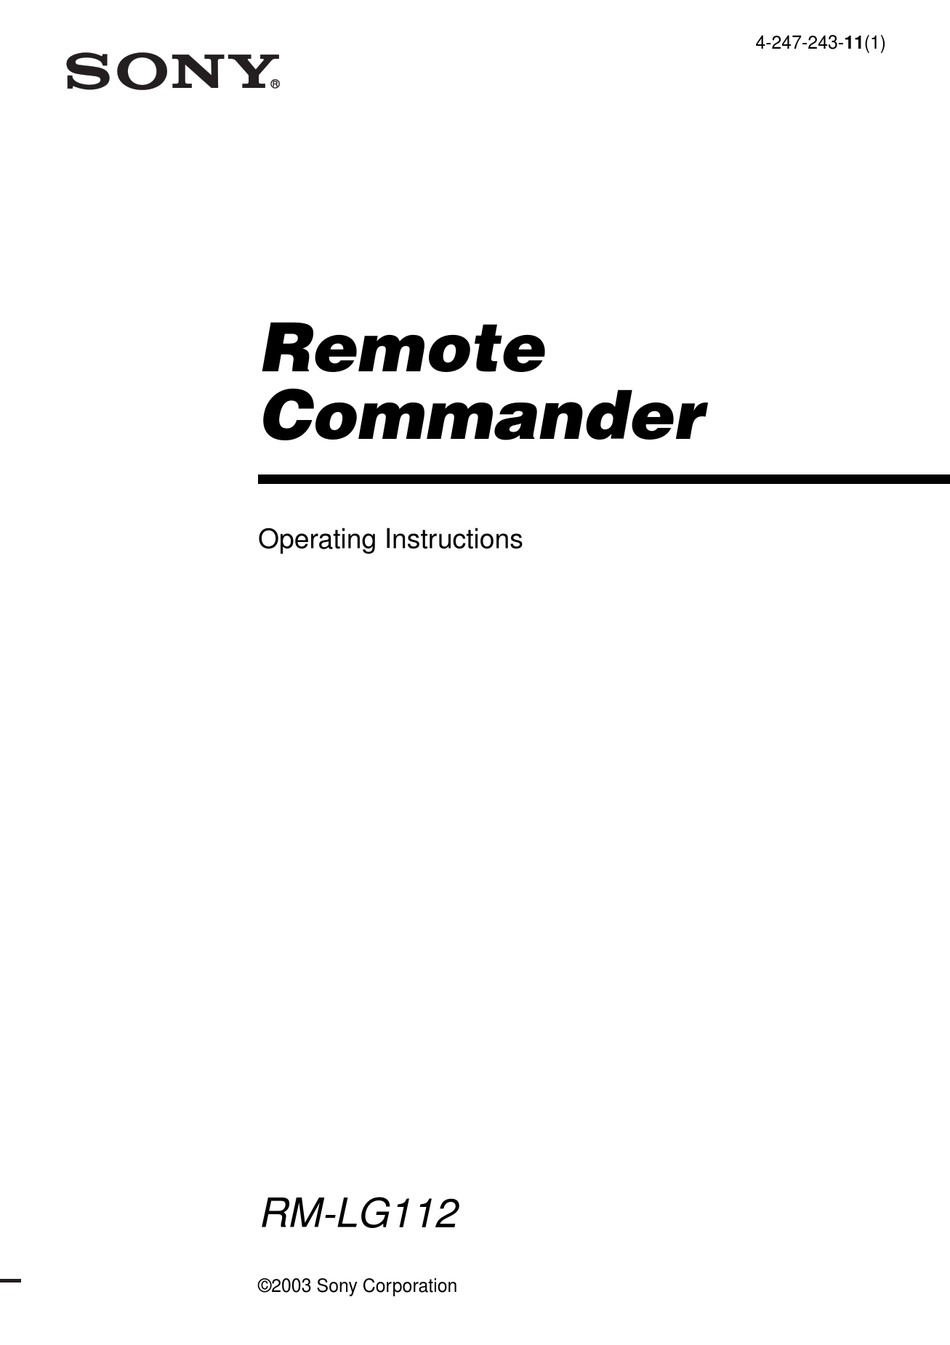 SONY RM-LG112 PRIMARY OPERATING INSTRUCTIONS MANUAL Pdf